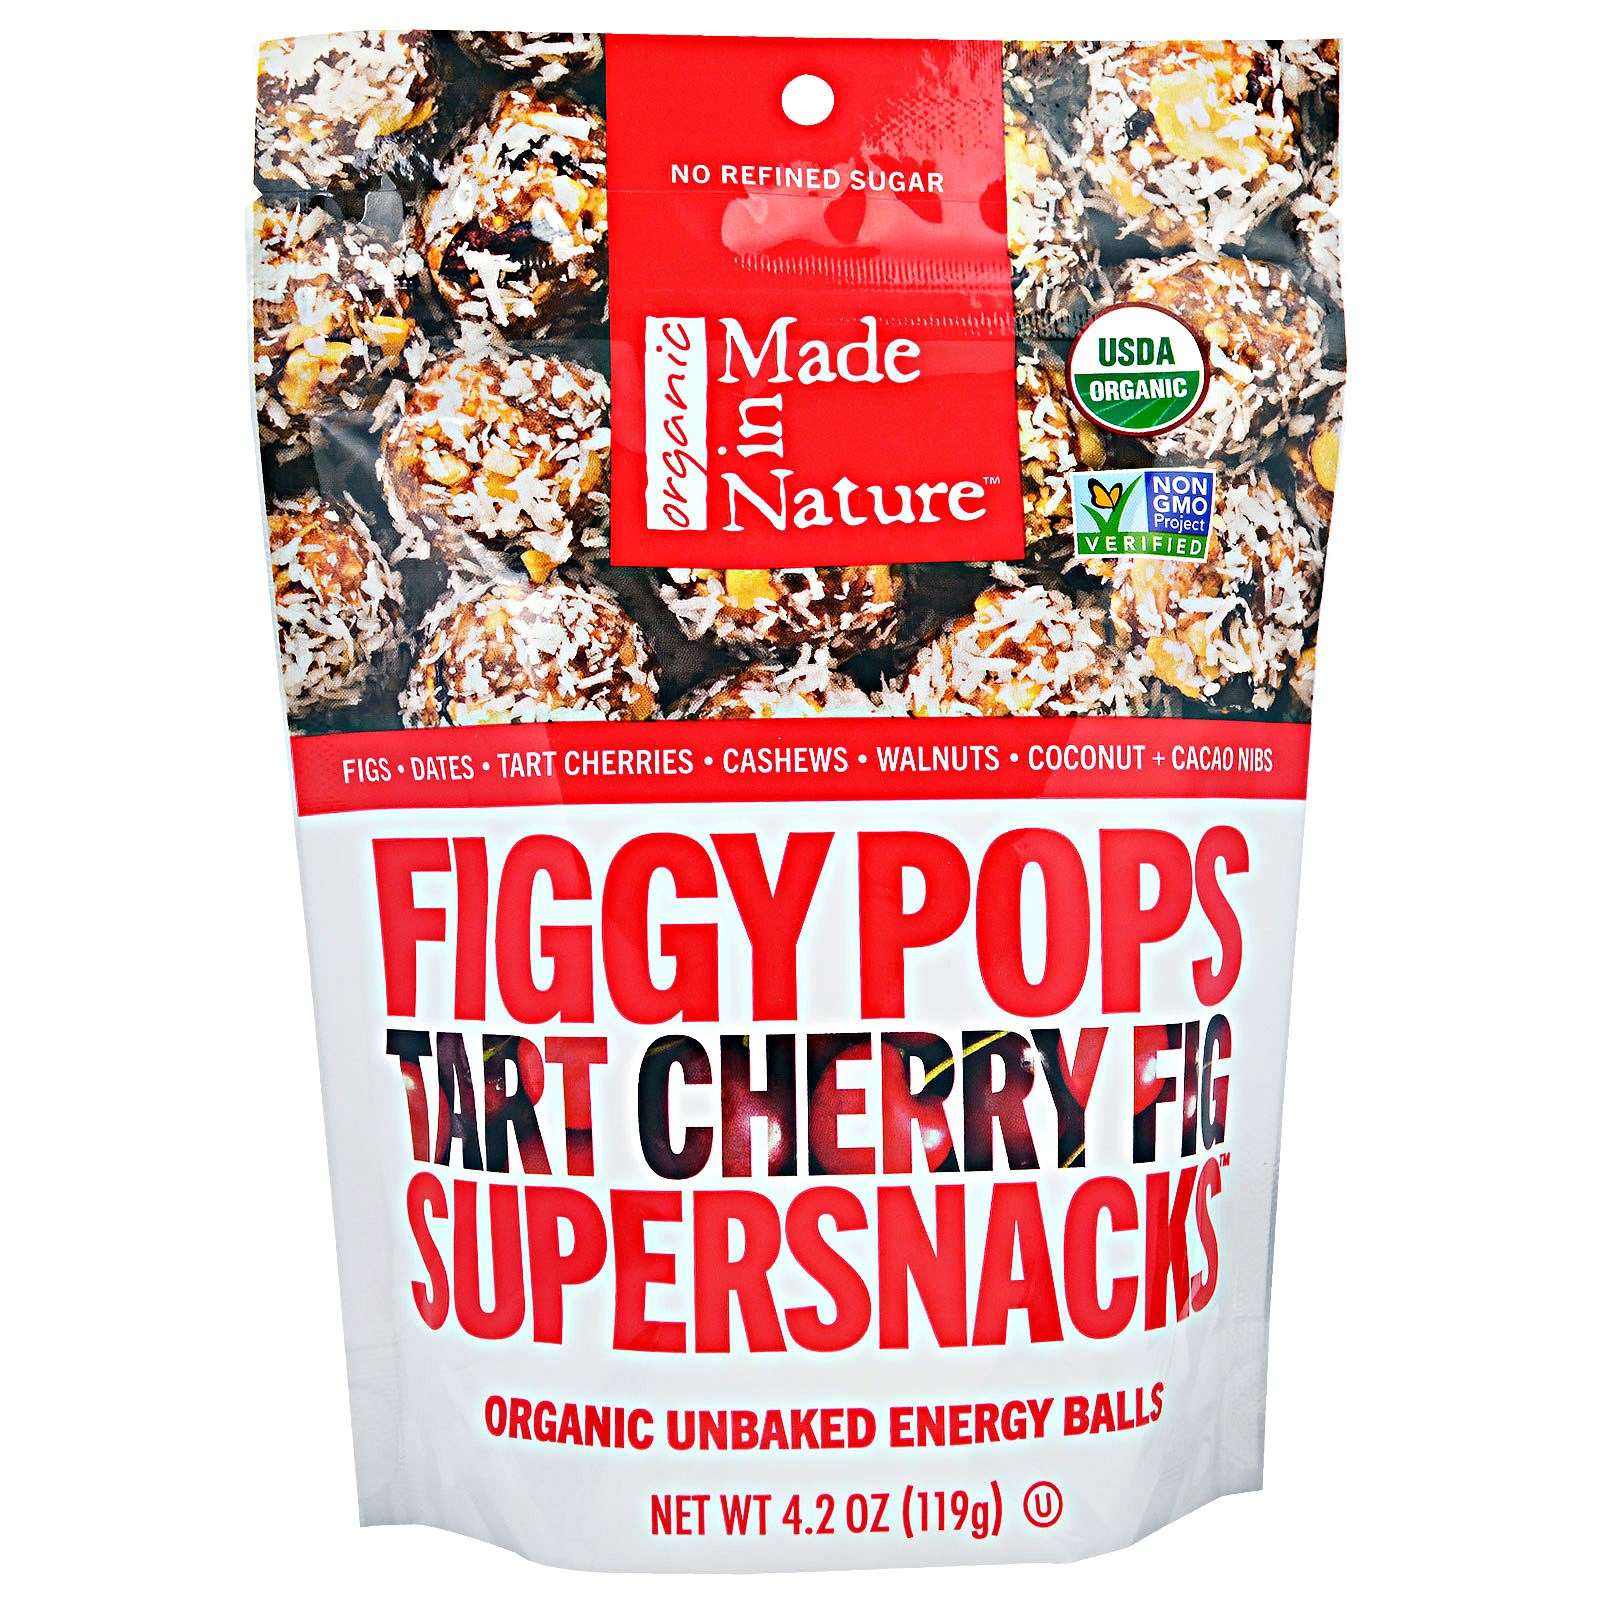 figgy pops tart cherry fig supersnack